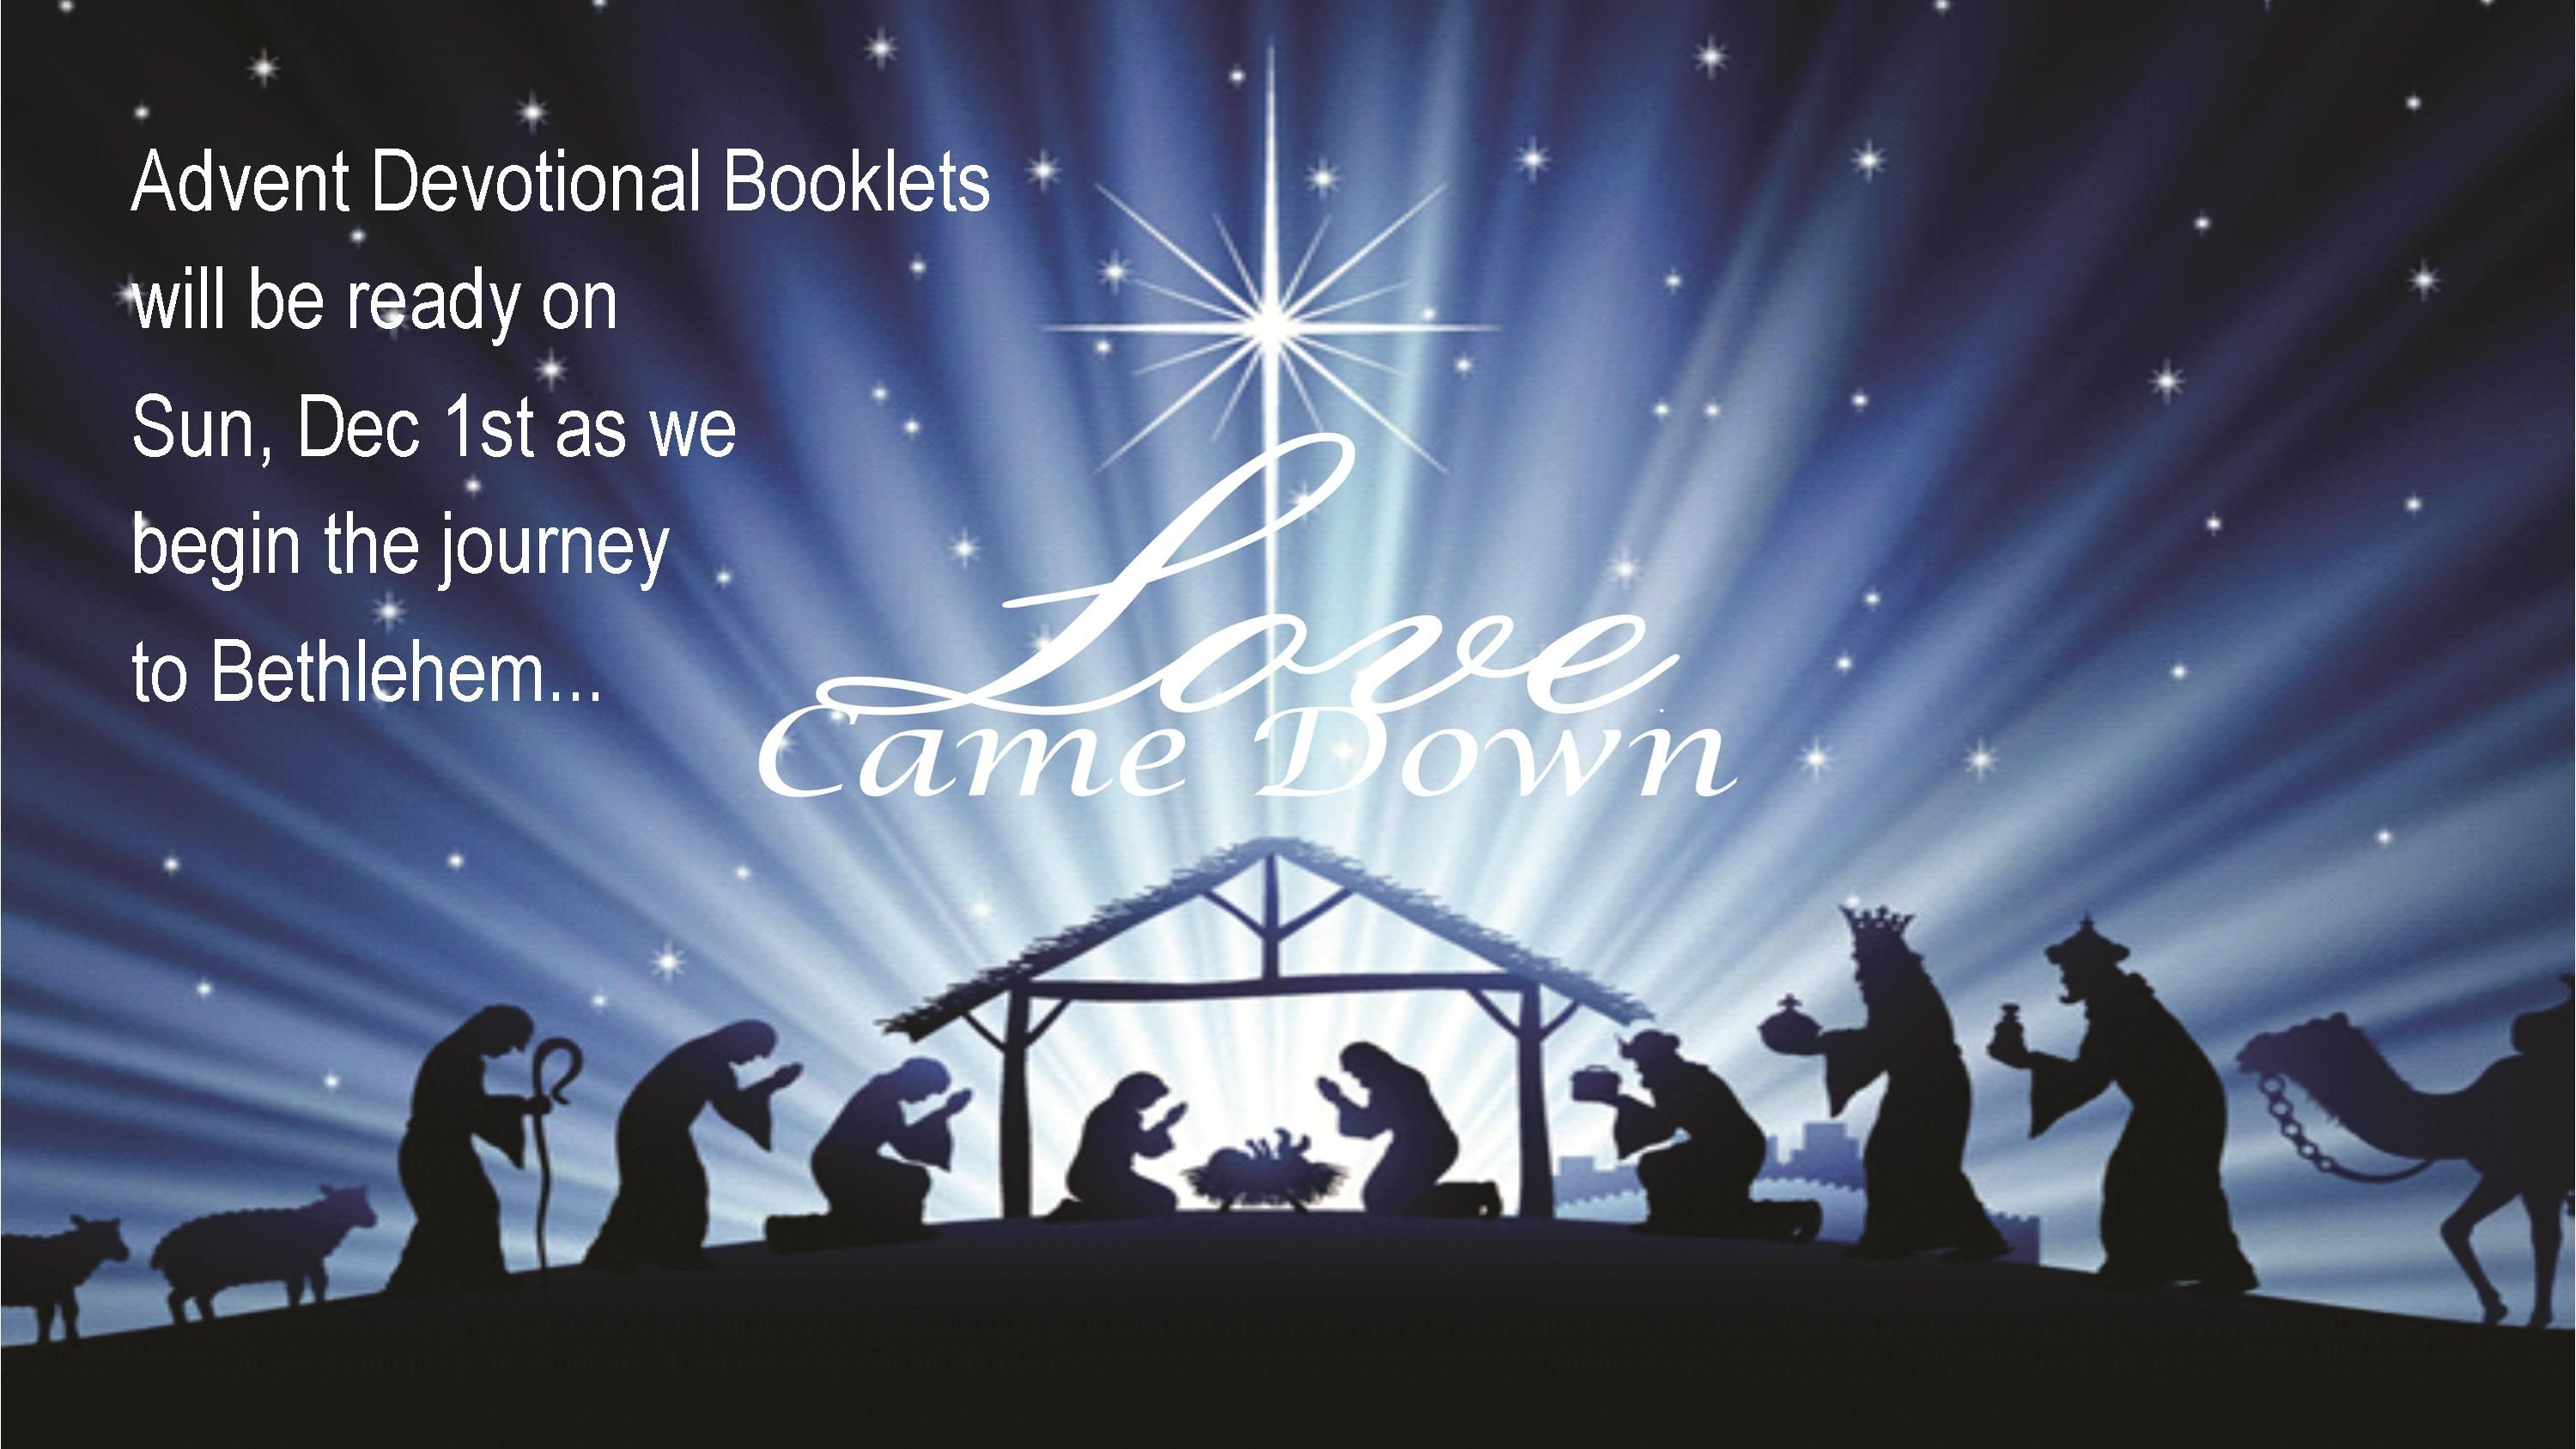 Advent Booklets Worship Slide